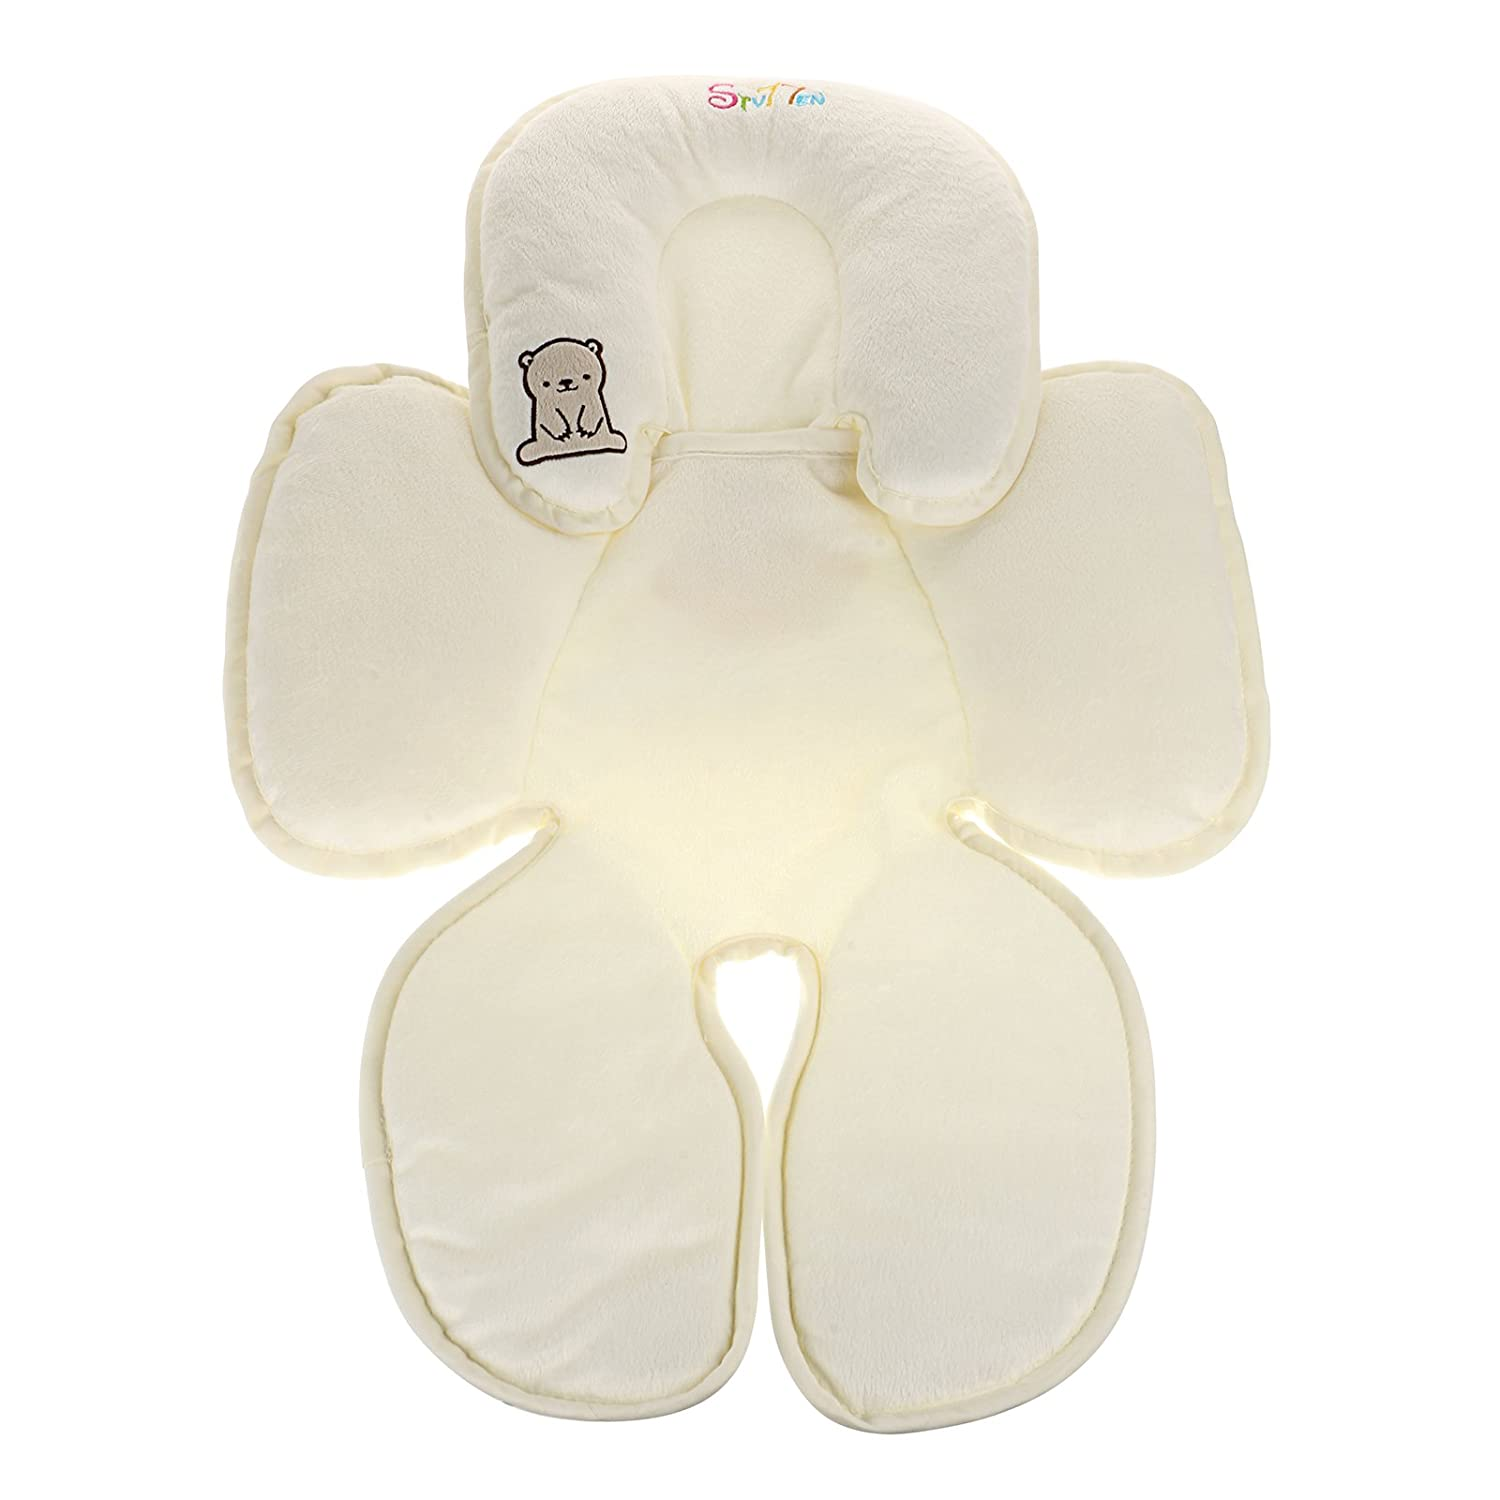 Huayao Spv77EN Infant Body and Head Support for Car Seat Stollers